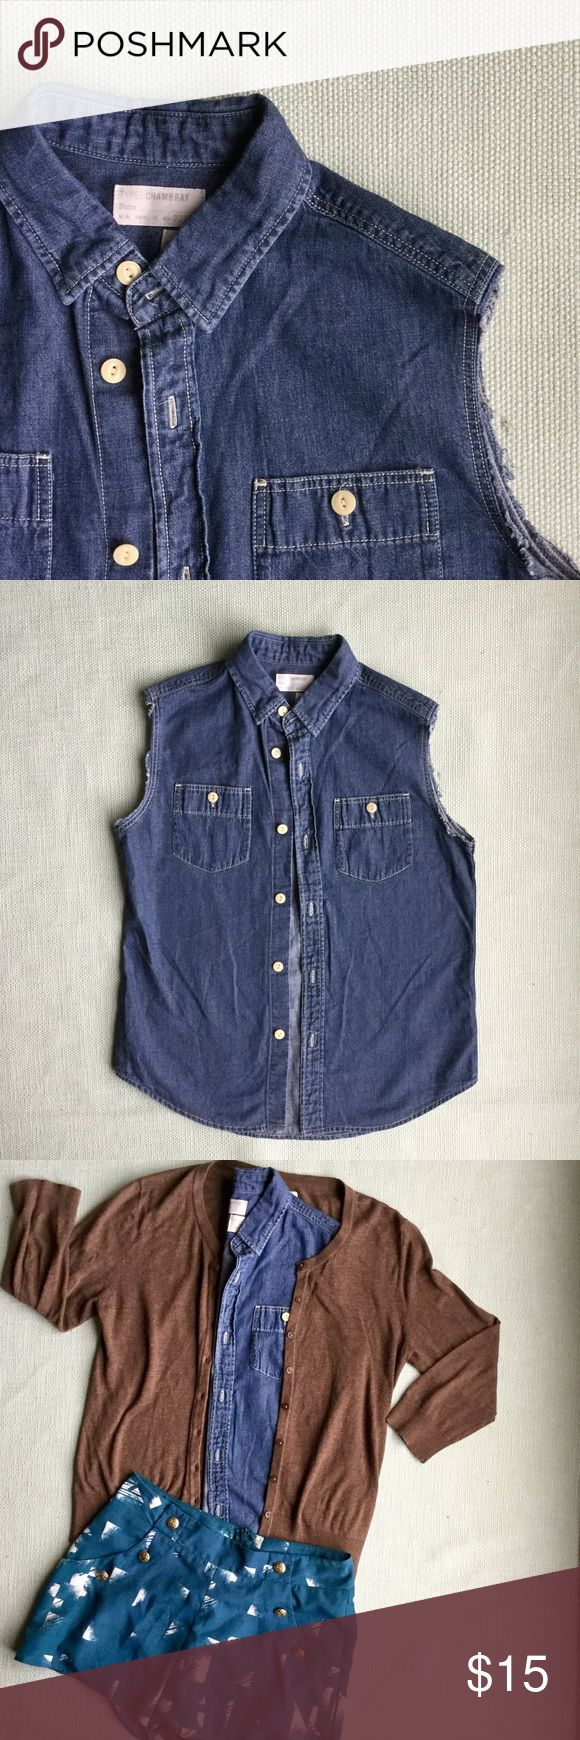 """Sleeveless Chambray Top-- J.Crew Just in time for summer- chambray J.Crew button up top. Throw a cardigan or sweater over top and you're ready for the office!✨✨✨ Bust from pit to pit: 17"""" Length from shoulder: 21"""" Length from underarm to hip: 12"""" J. Crew Tops Button Down Shirts"""